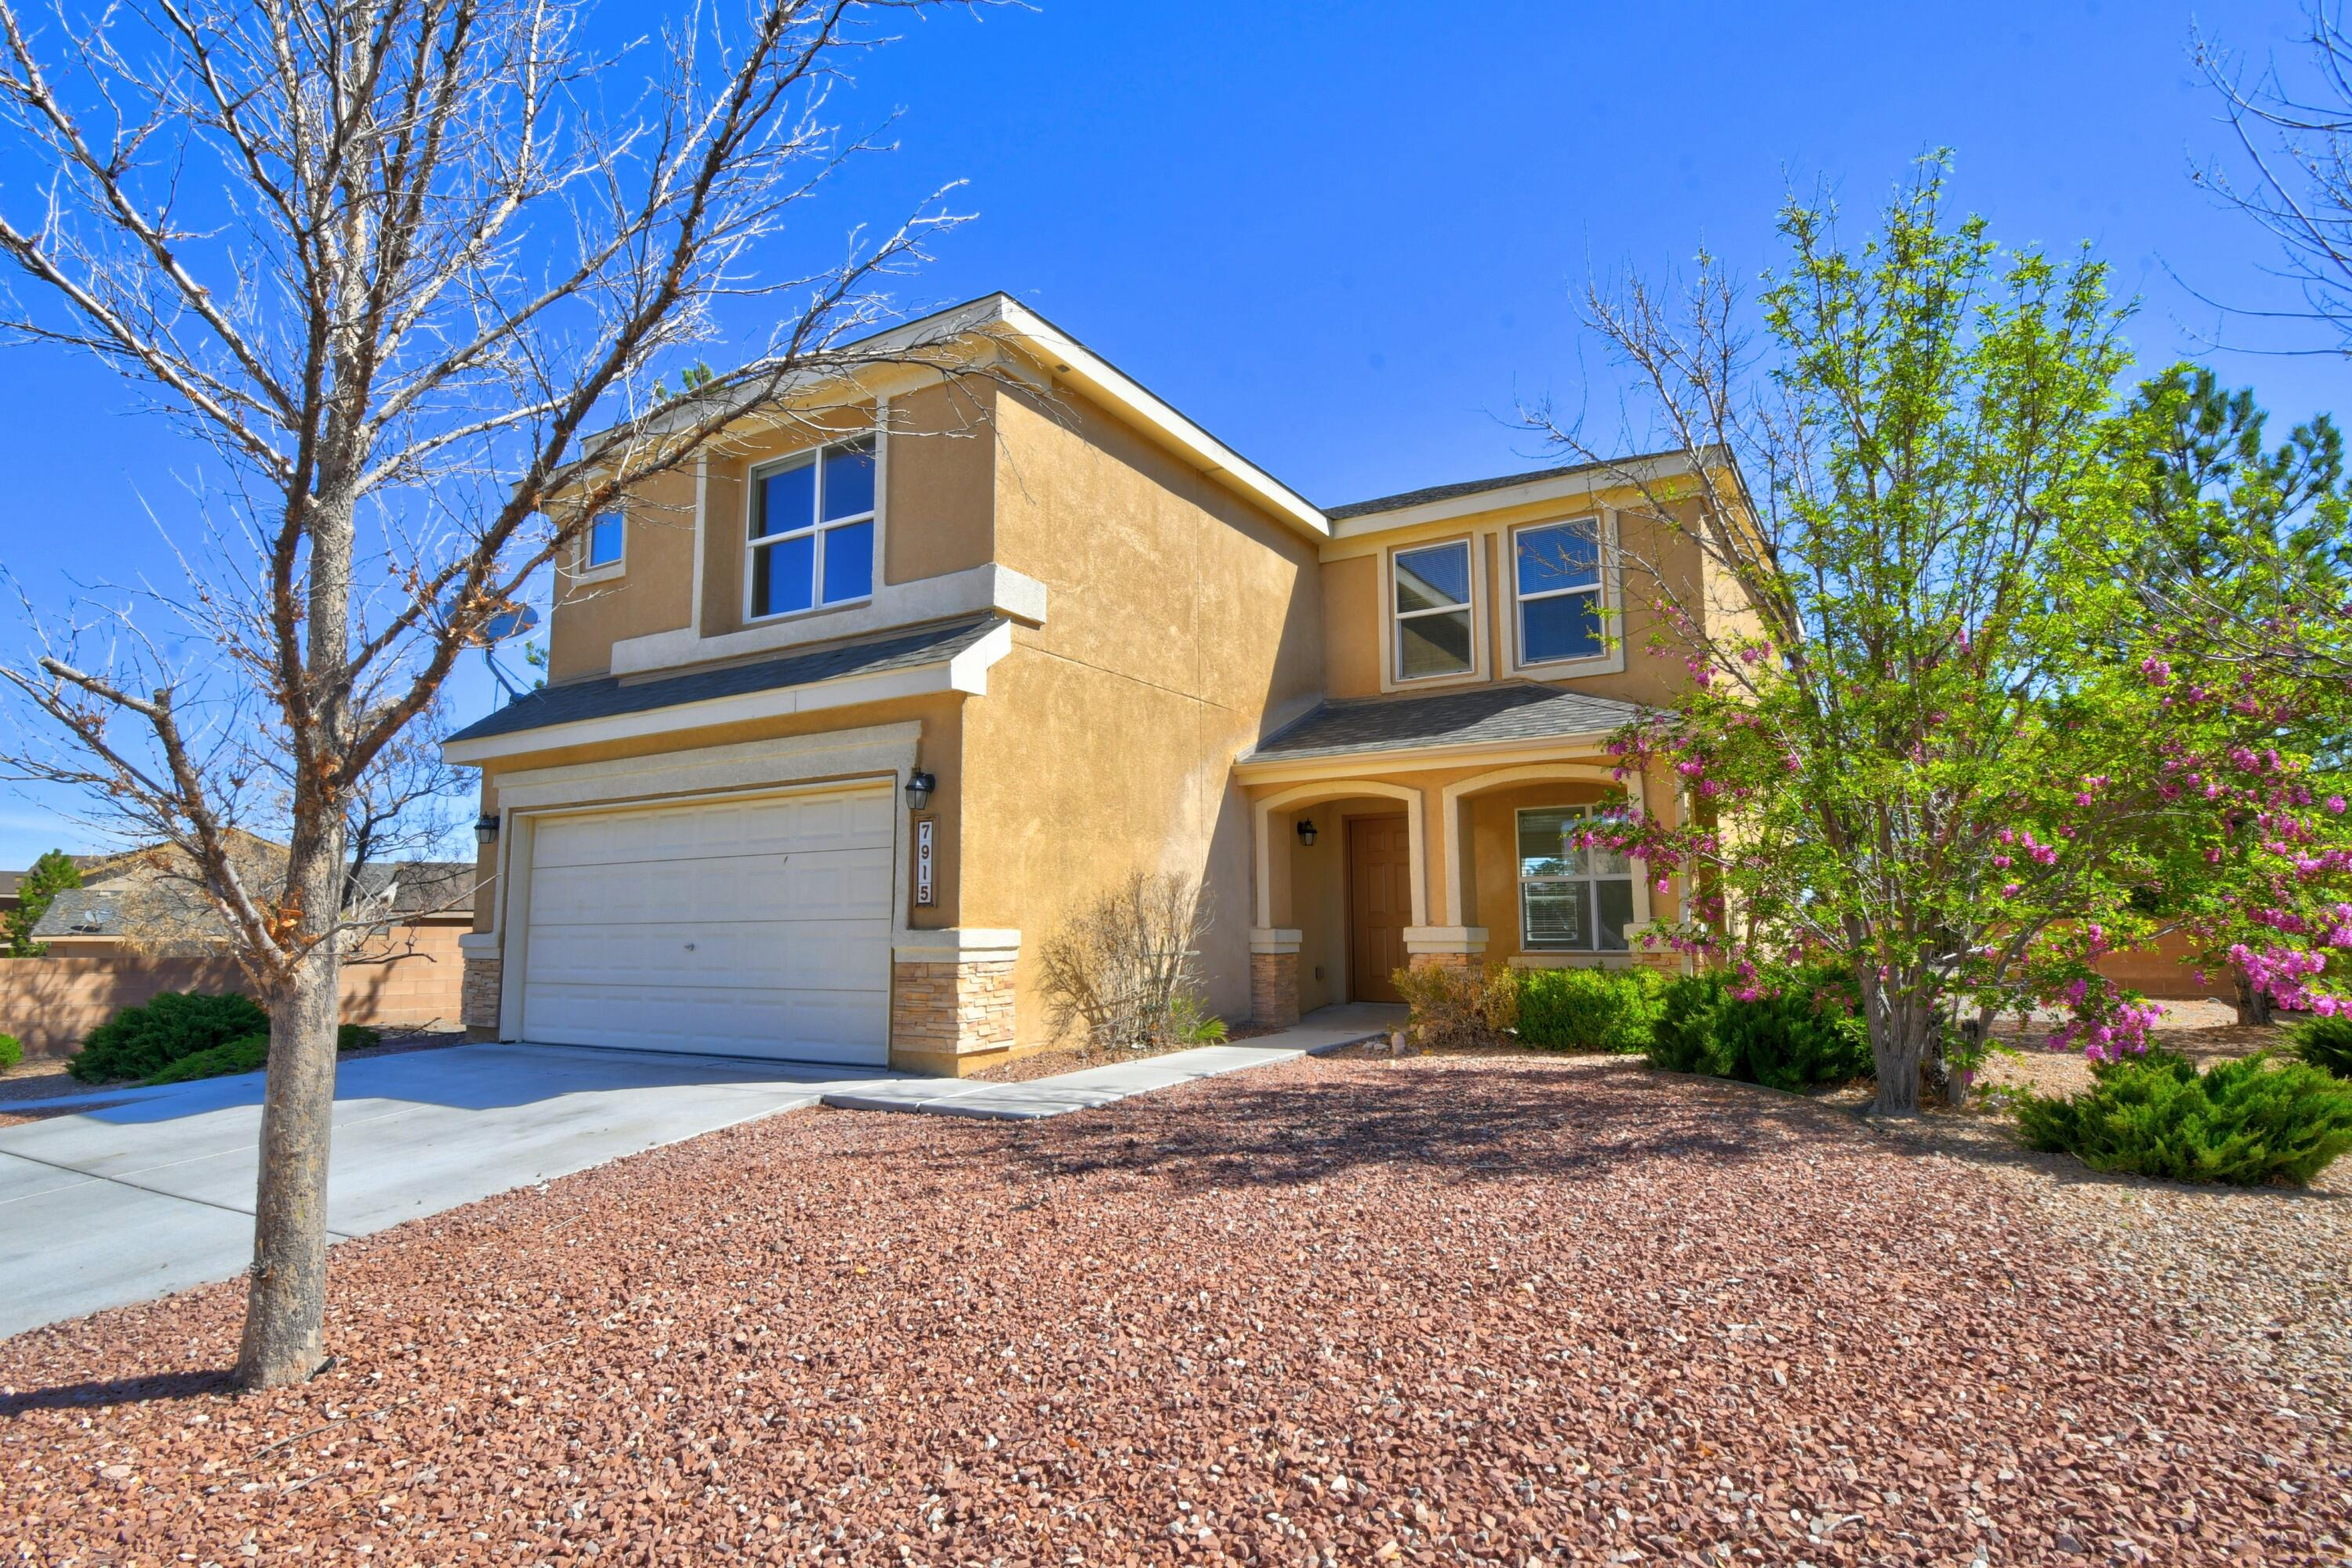 Former Pulte Model has had repairs and is ready to go! New stainless steel range/oven and microwave with solid surface counters in the kitchen. No carpeting down stairs. Fresh interior paint. Mountain views!! Large cul-de-sac lot ready for a swing set or a pool!!